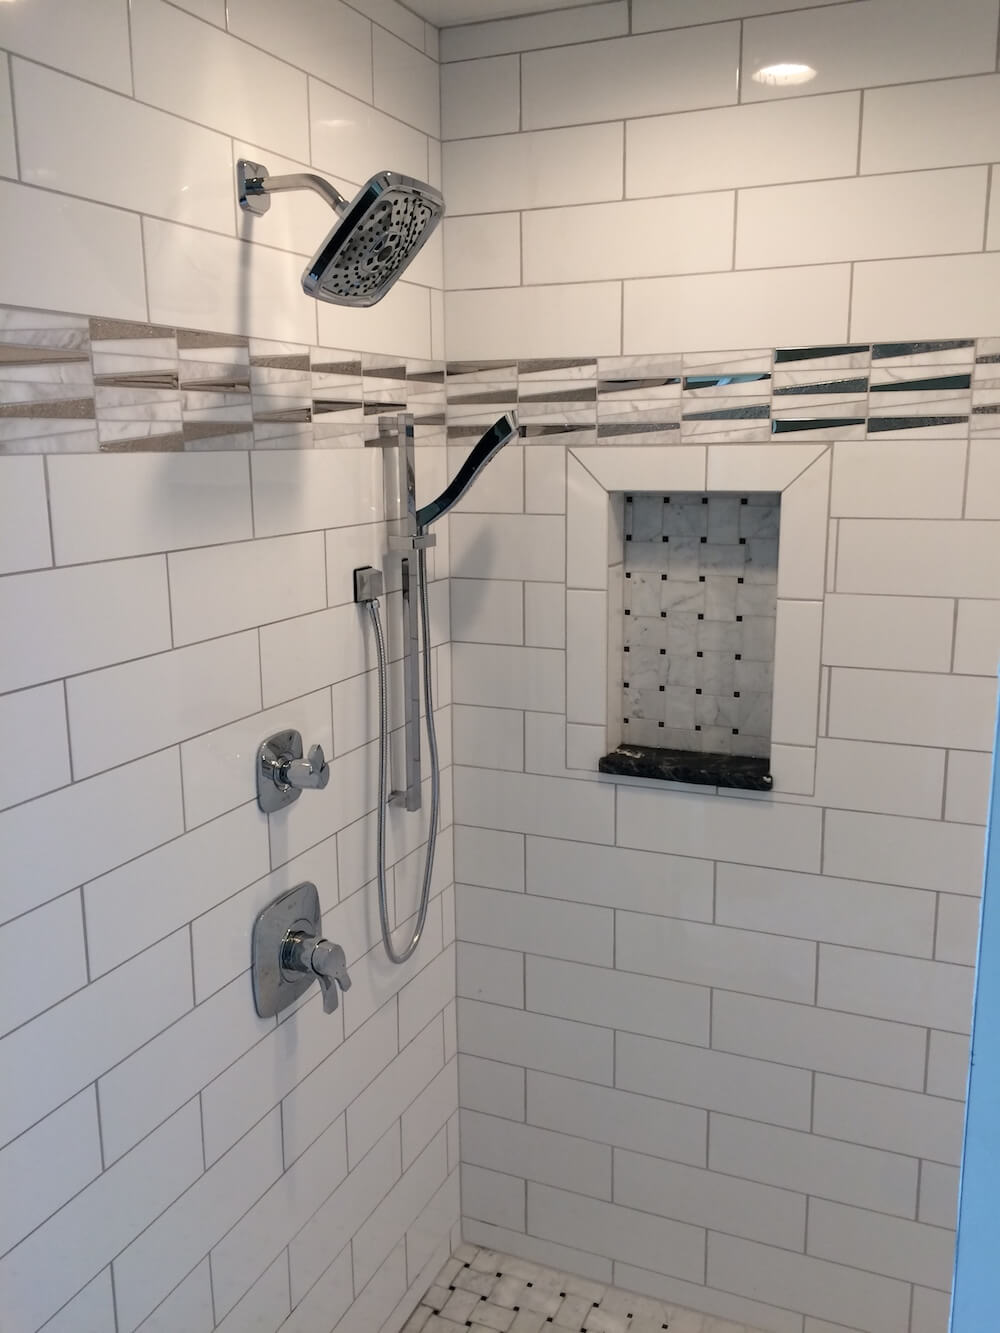 Regrouting Shower Tile Cost Regrout Shower Price - Can tile be regrouted